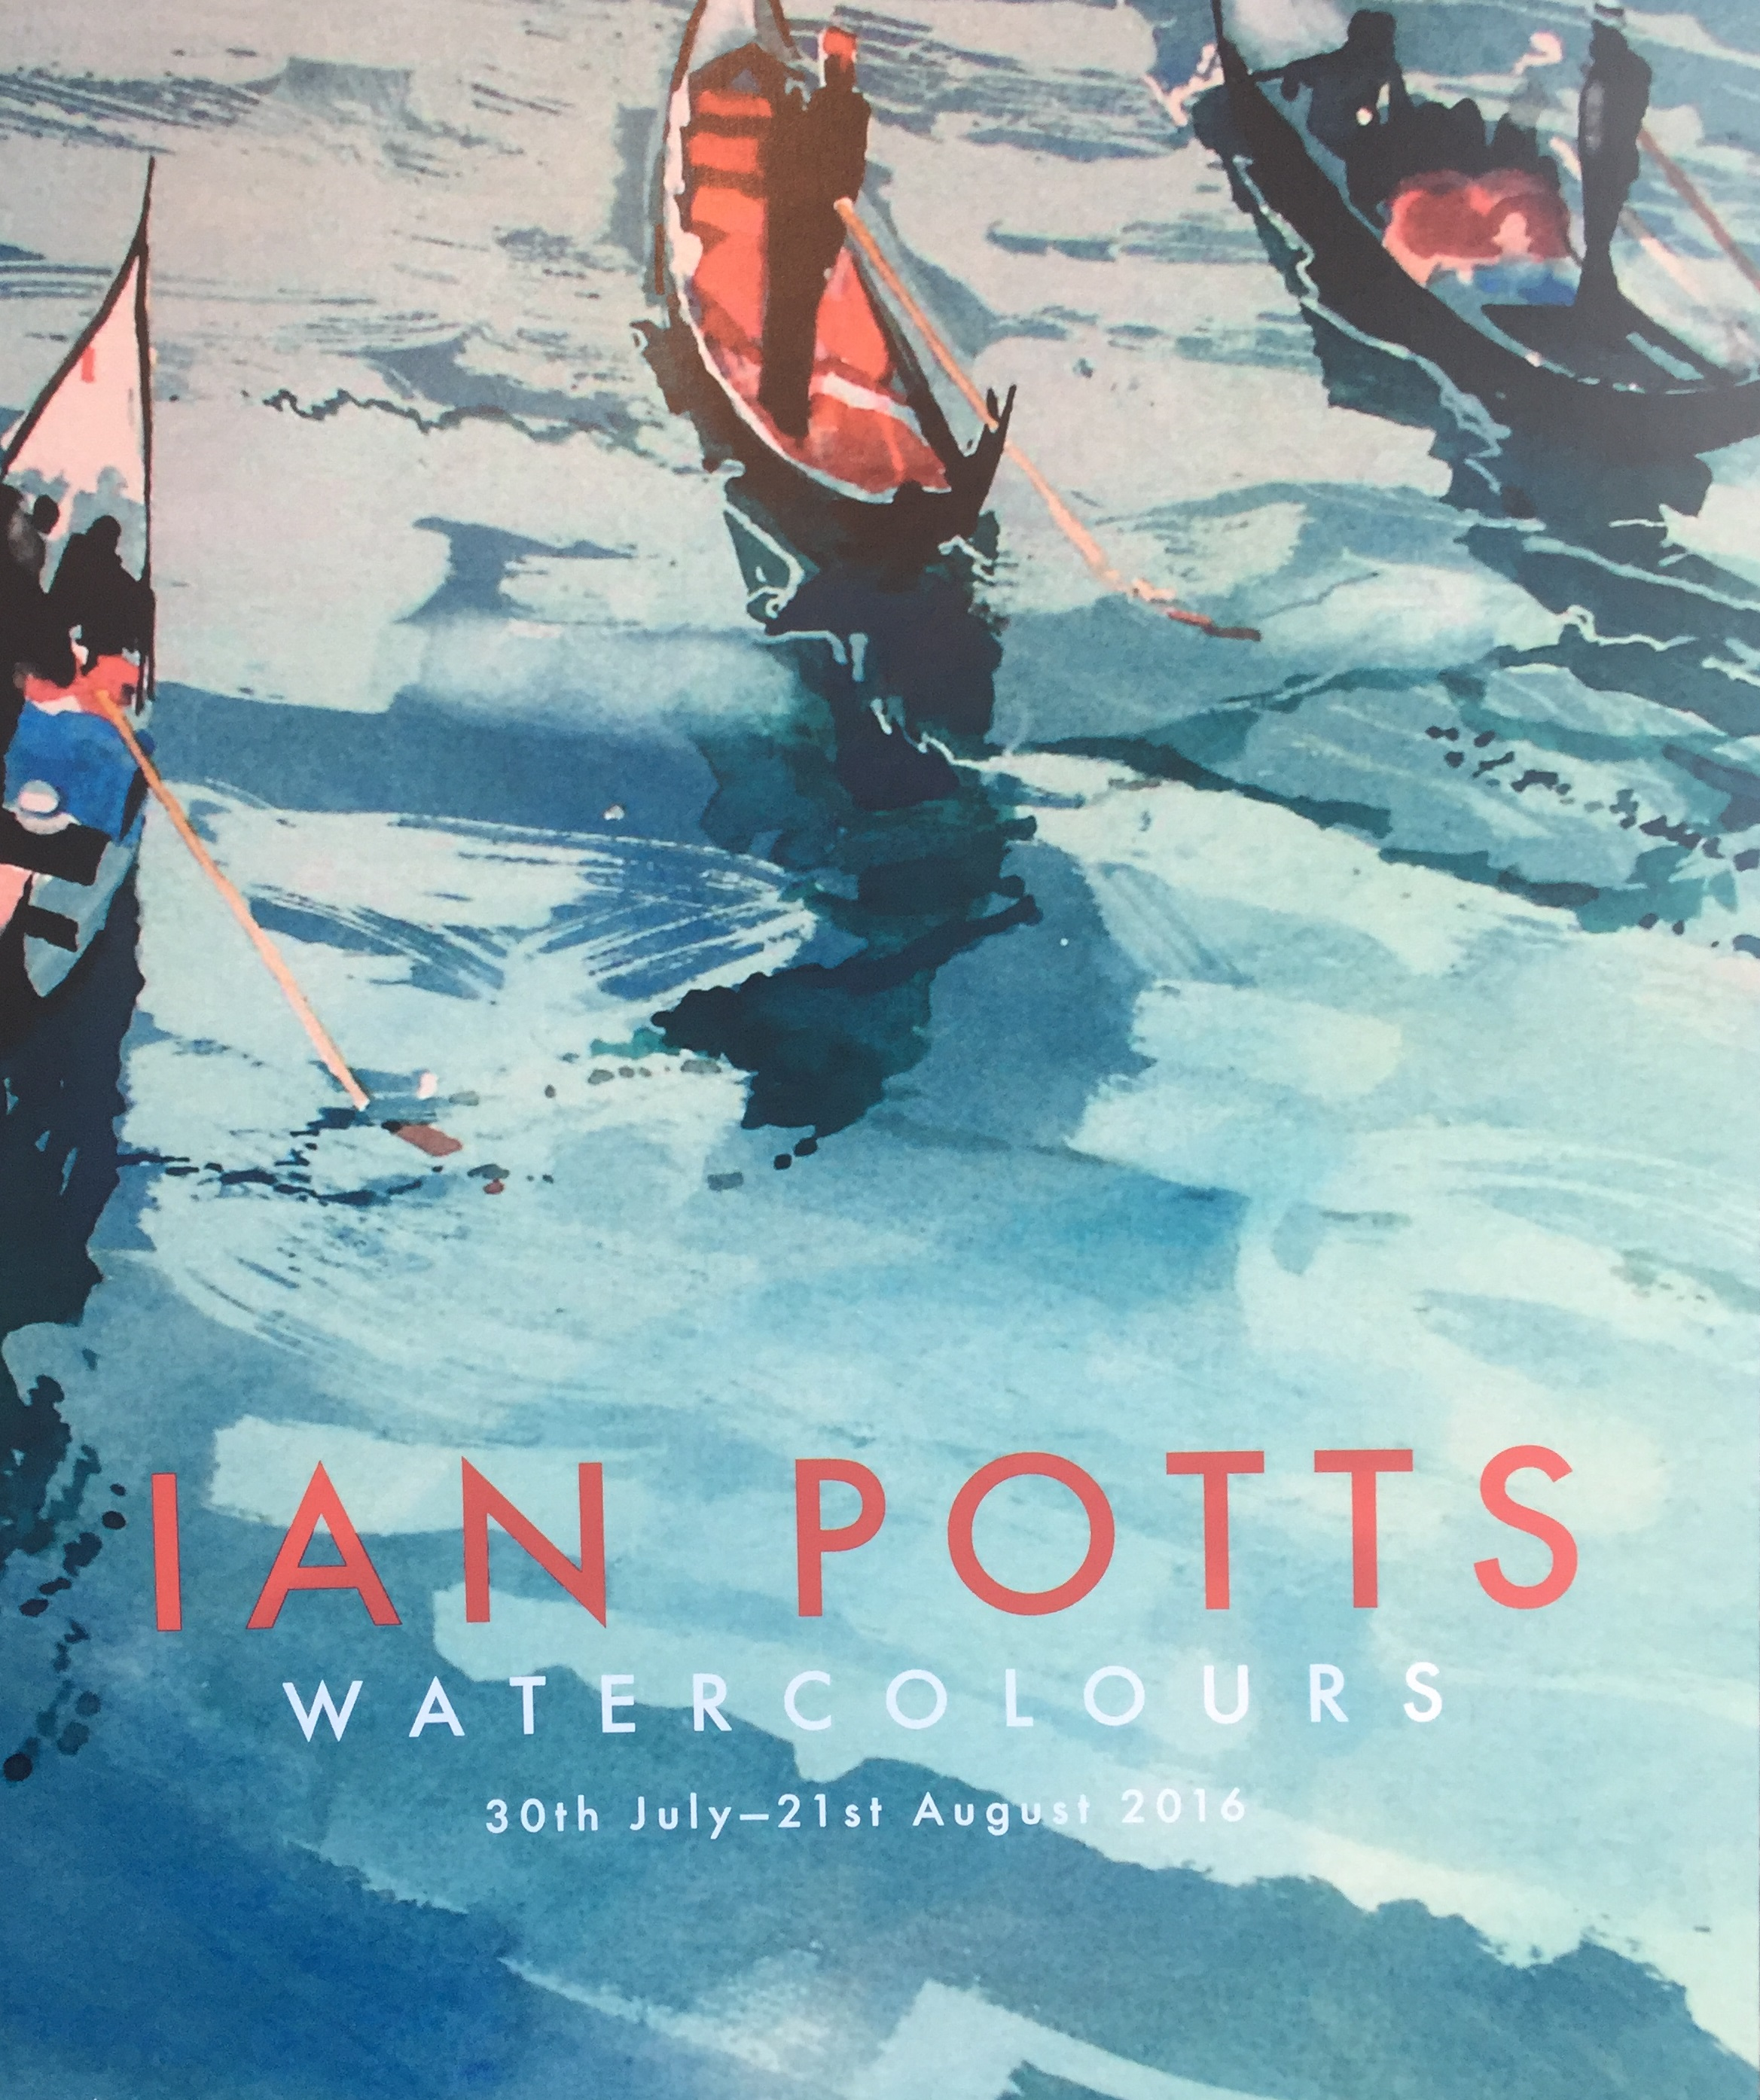 Ian Potts poster detail